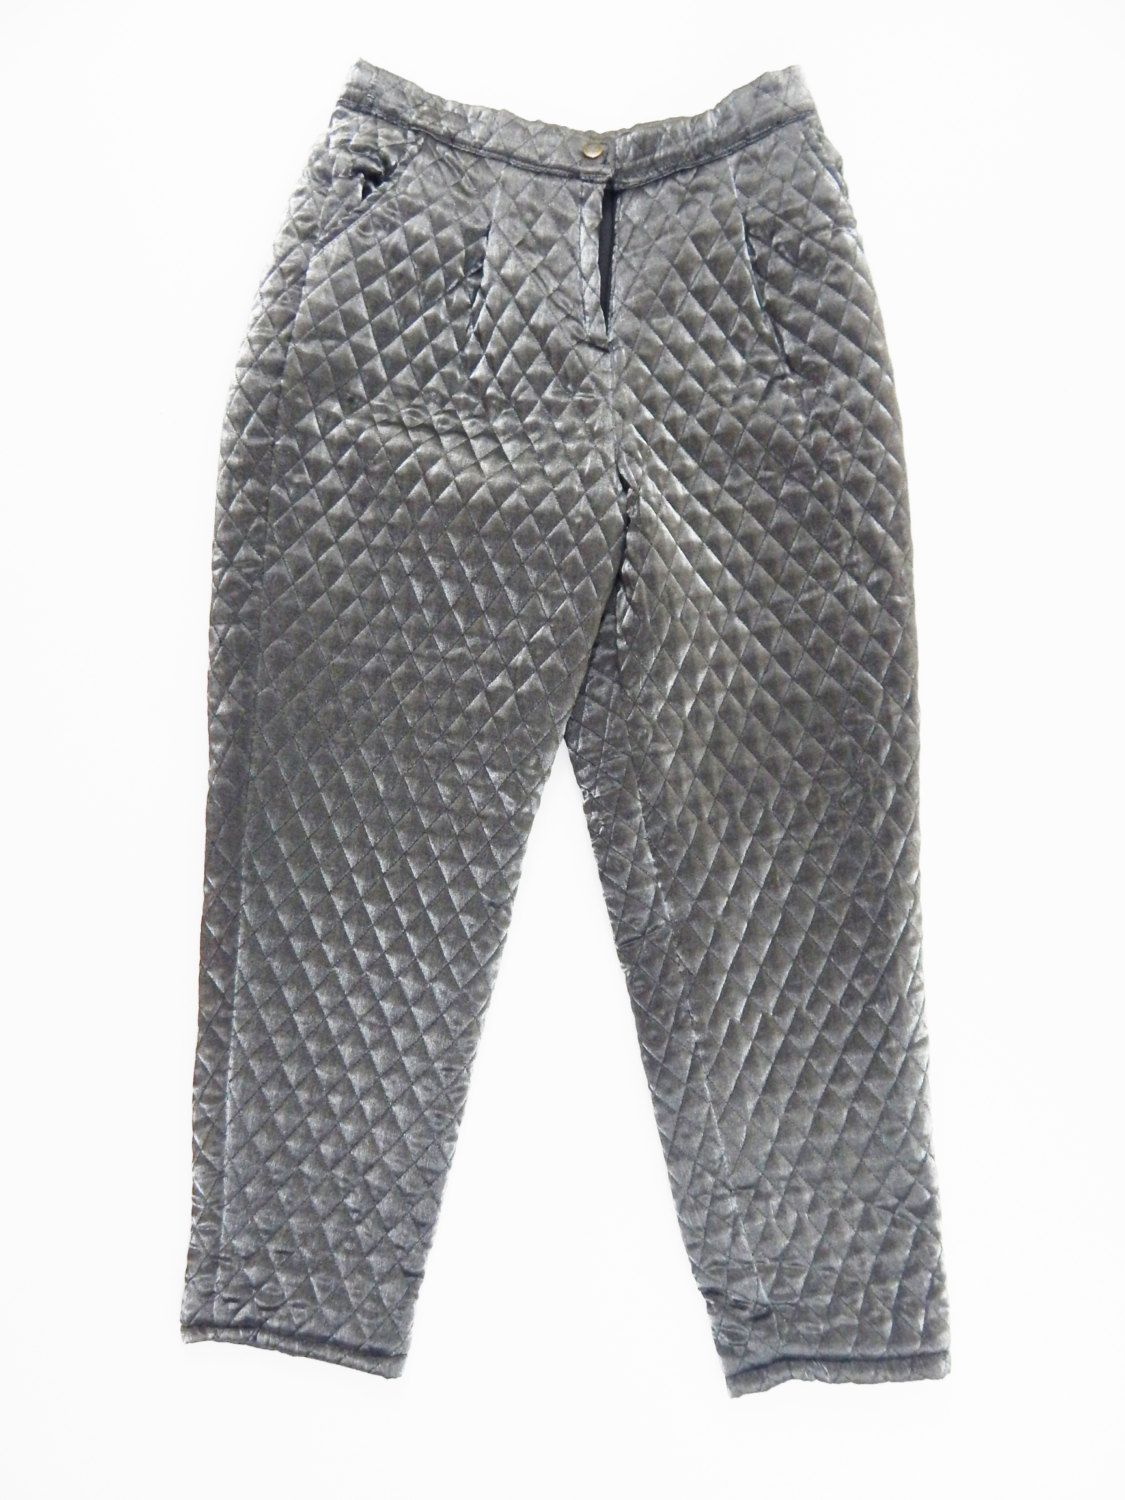 90s silver jogger daimond quilted pant women men pants cyber ... : mens quilted pants - Adamdwight.com